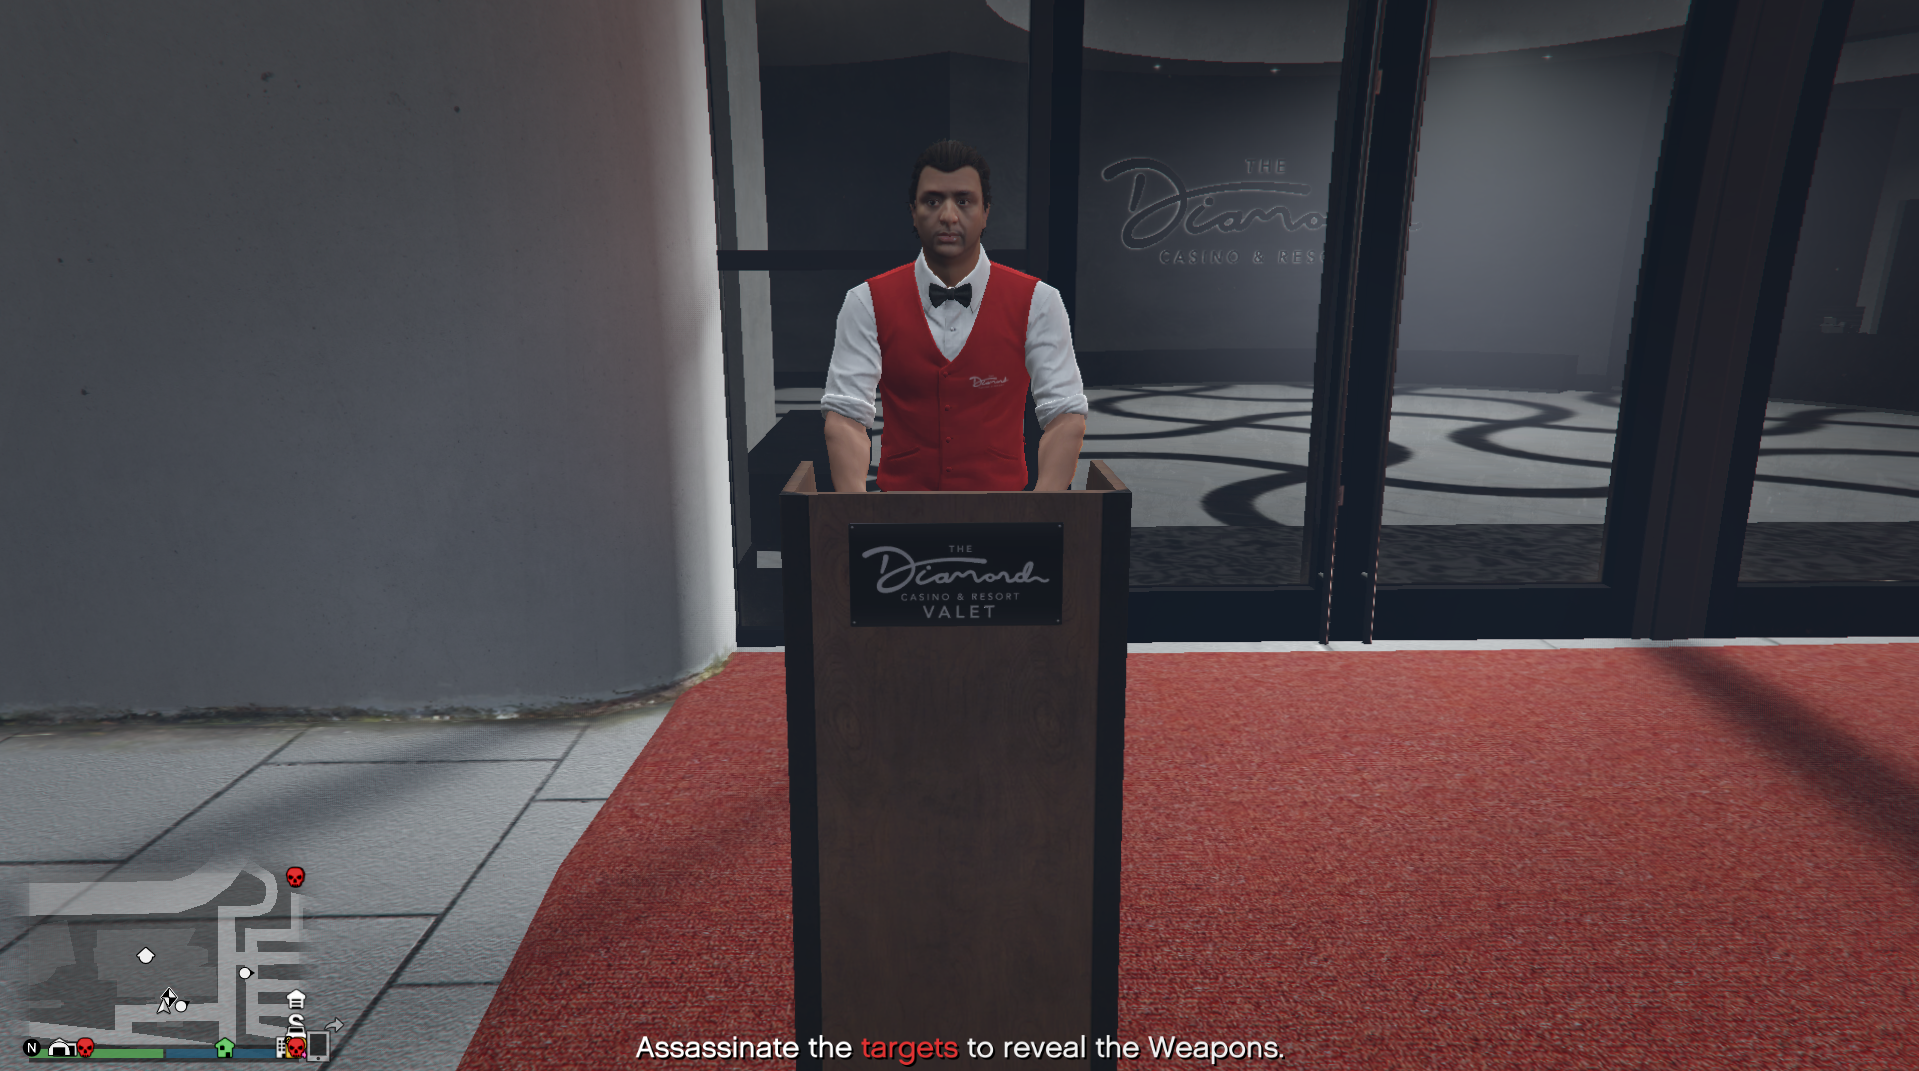 GTA Online players won't stop killing the casino valet